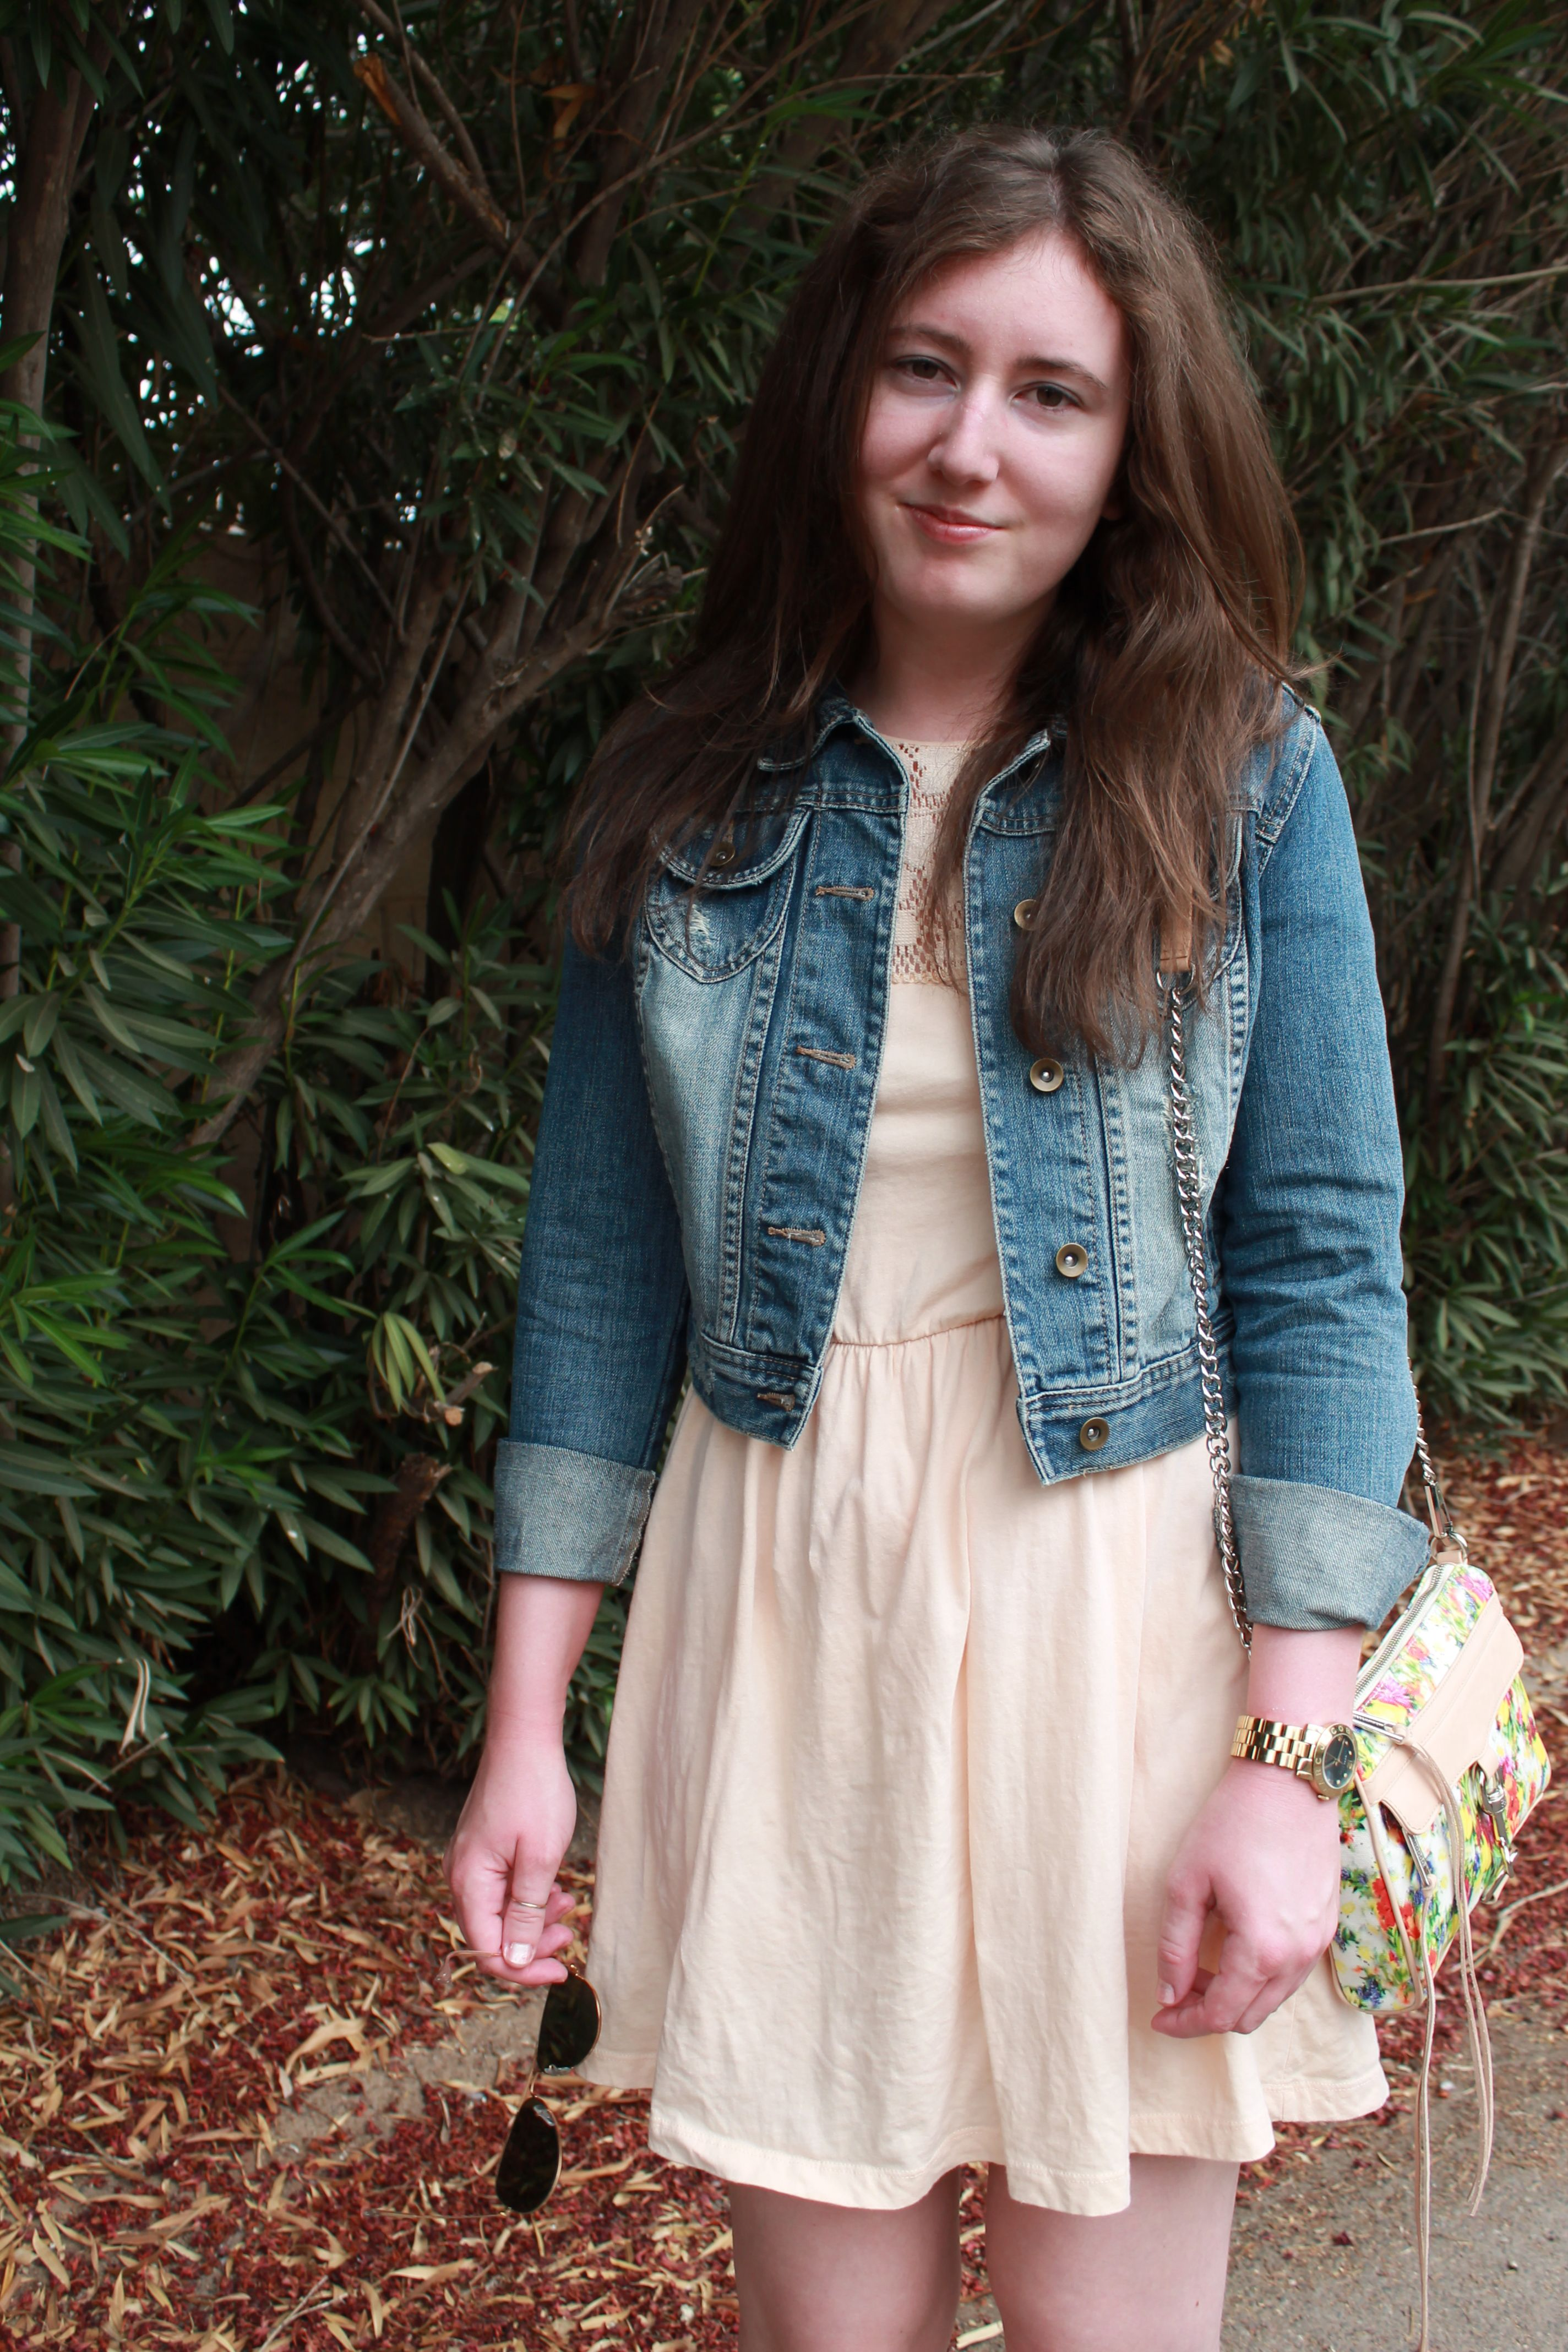 Pink dress with jean jacket  Peach dress denim jacket  Style from the Blog  Pinterest  Peach